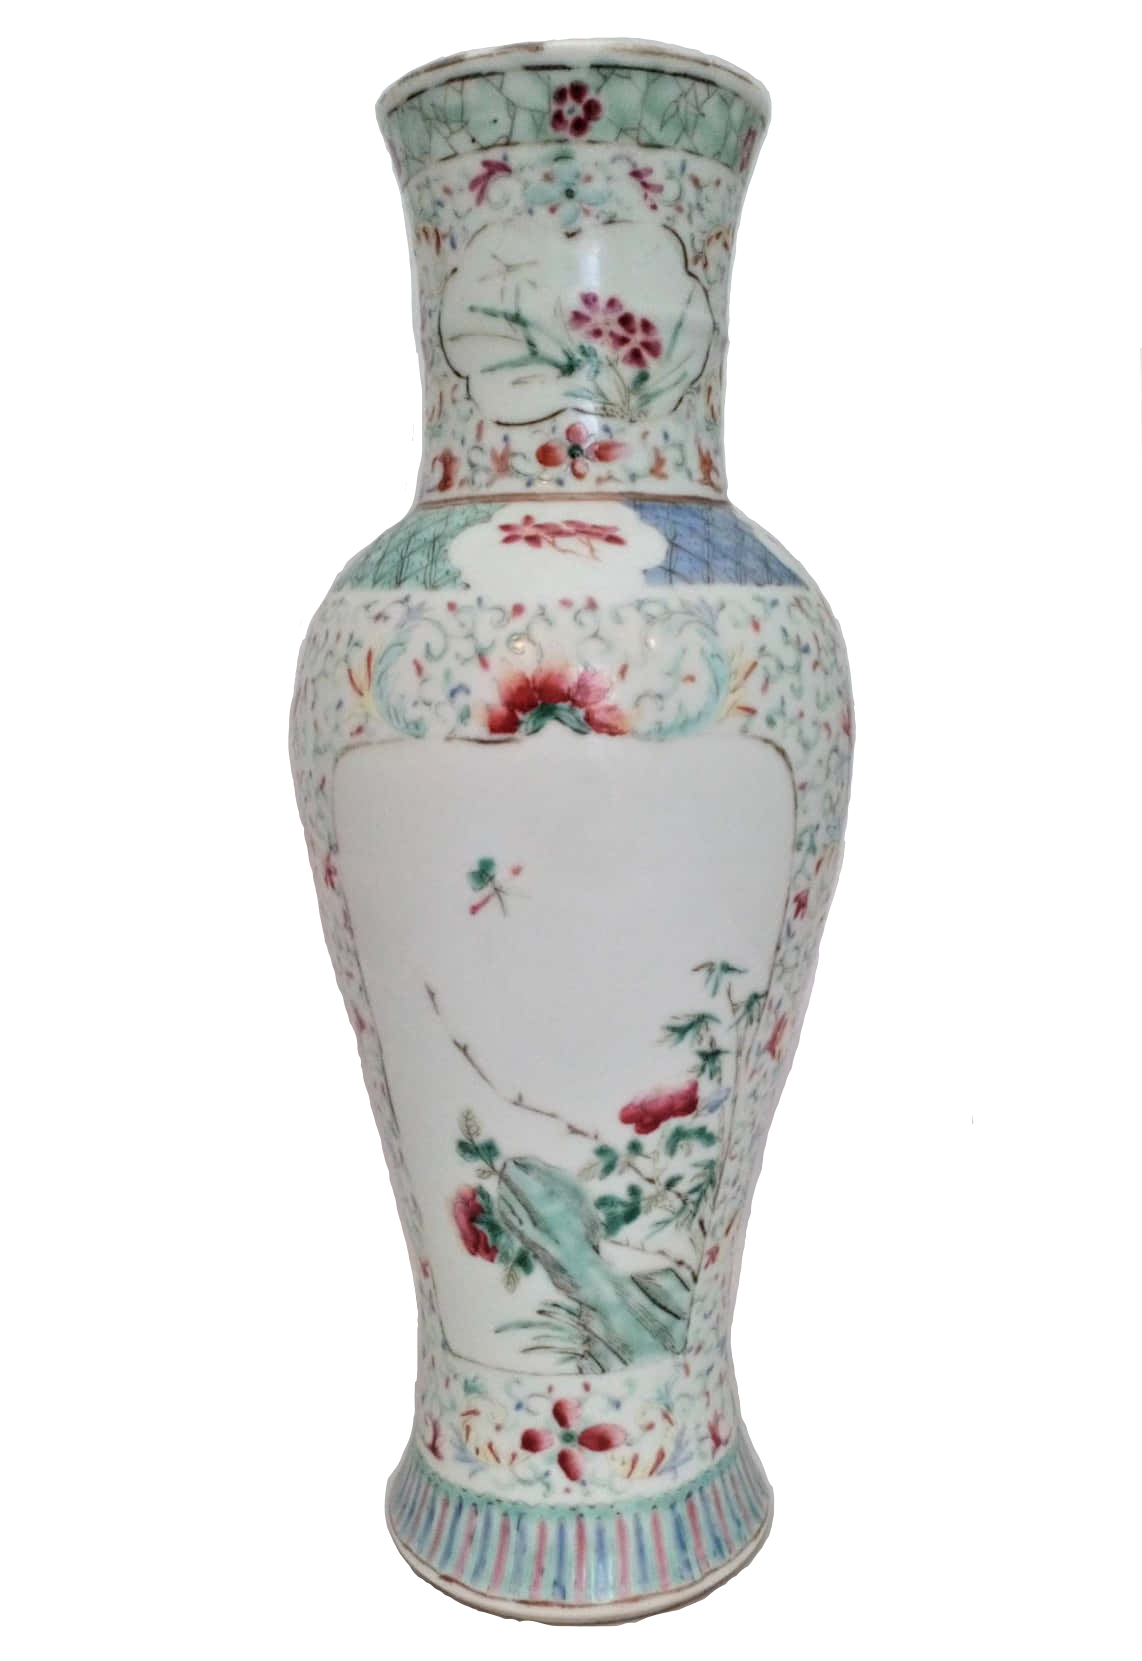 Antique Qianlong Chinese porcelain inverted baluster shaped vase hand painted in the Famille Verte palette in the Kakiemon style with bats and the Chinese symbol for Longevity. Made in the Qing dynasty 清代 in the 18th Century circa 1750.